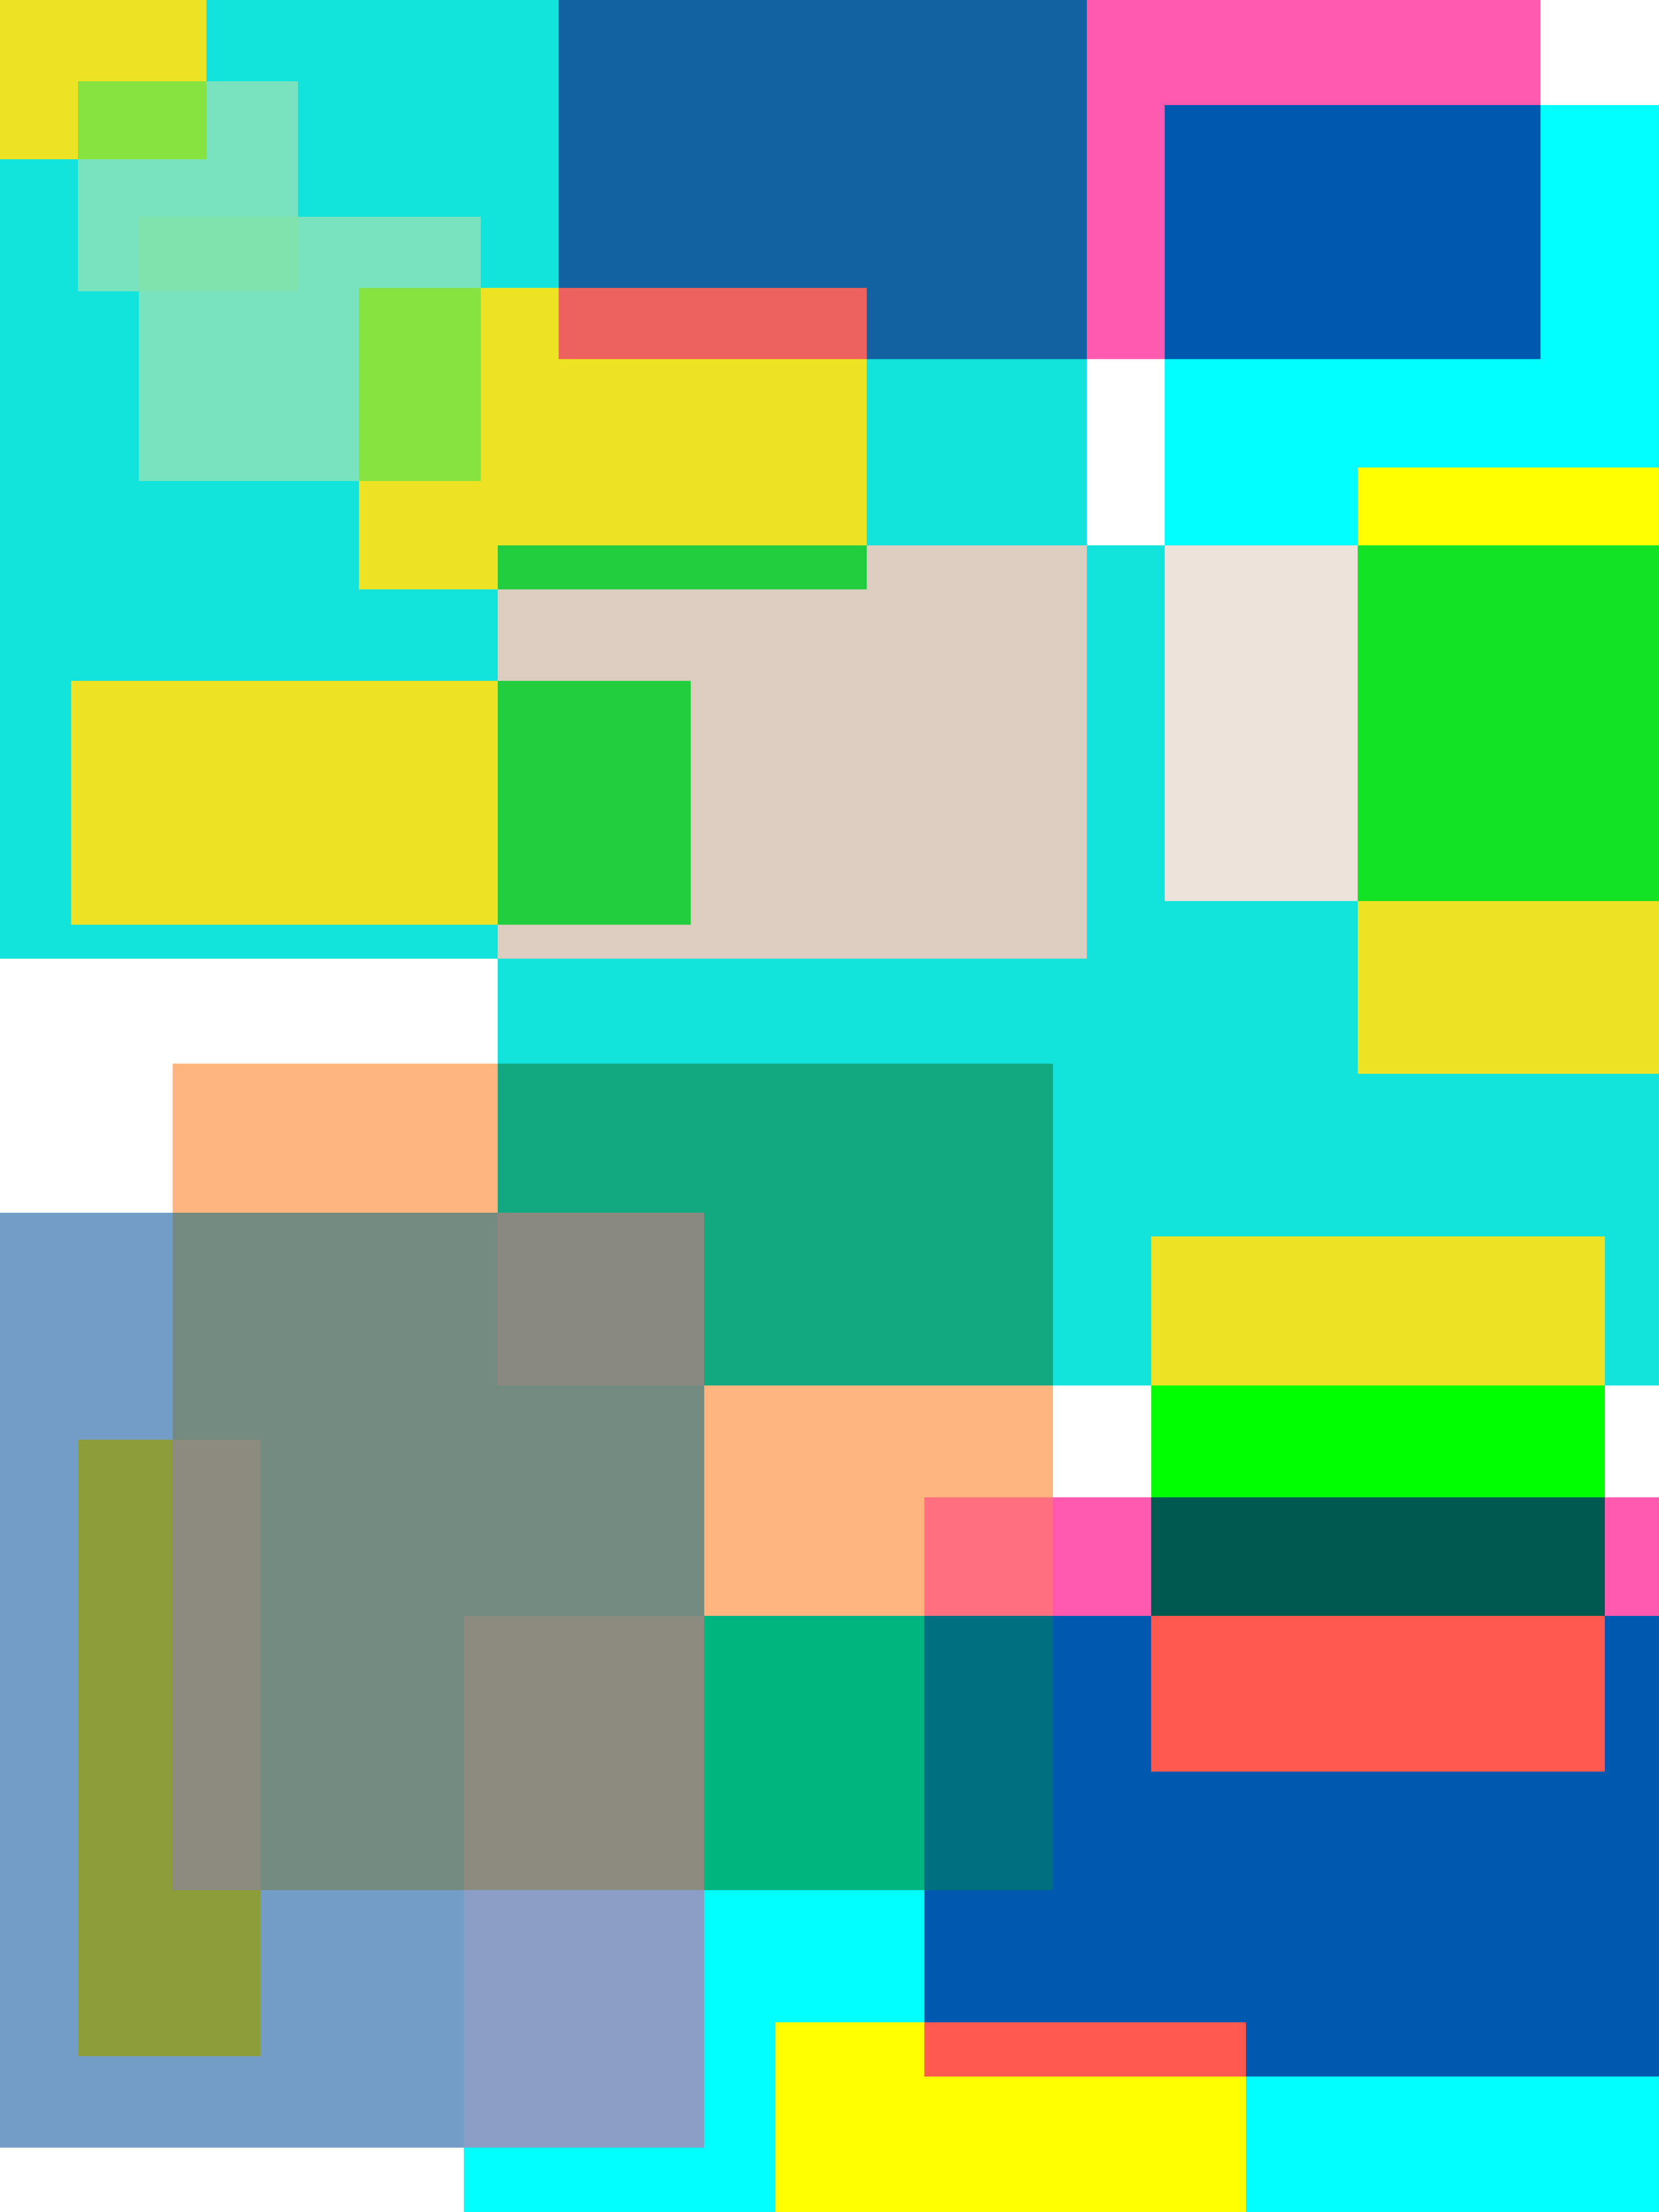 overlapping translucent coloured squares